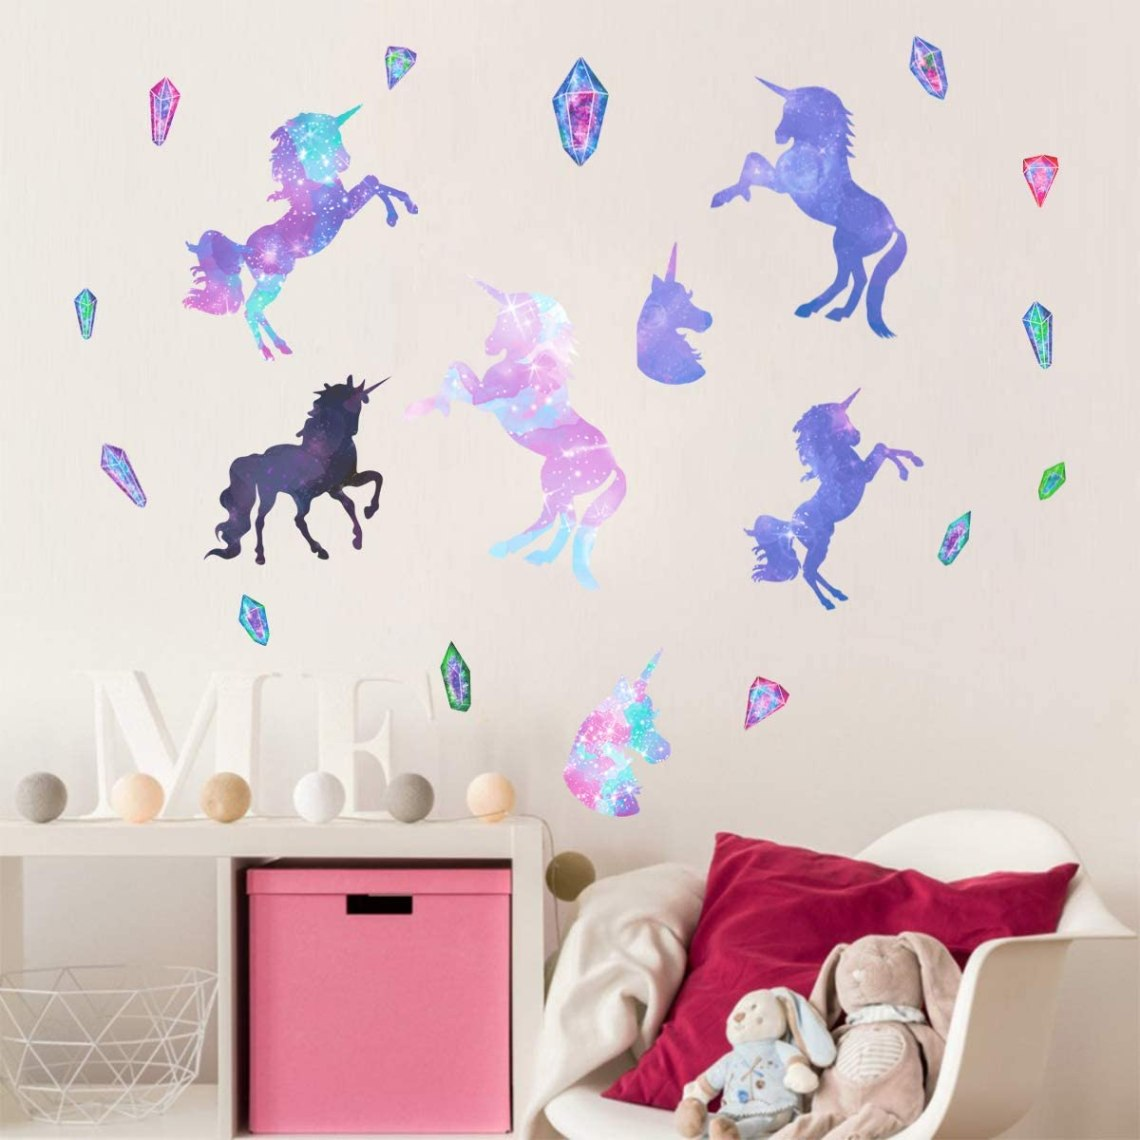 Galaxy Unicorn Wall Decals Gifts For Girls Boys Kids Bedroom Peel Stick Vinyl Room Wall Stickers Removable Decor Nursery Decorations Wall Decor Baby Semo Es